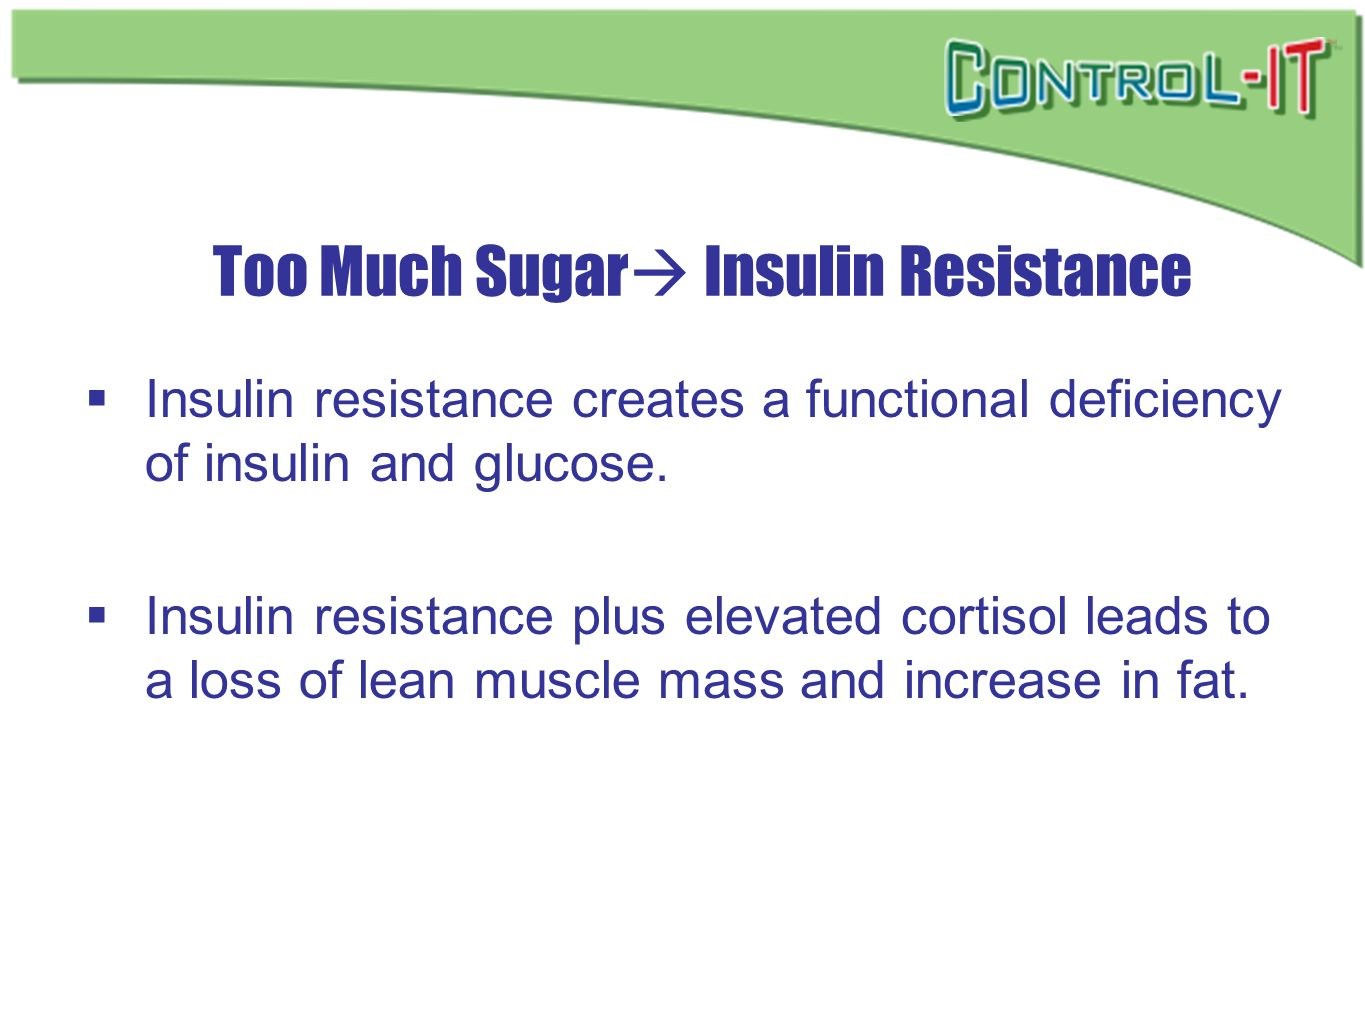 Too Much Sugar Insulin Resistance Insulin resistance creates a functional deficiency of insulin and glucose. Insulin resistance plus elevated cortisol